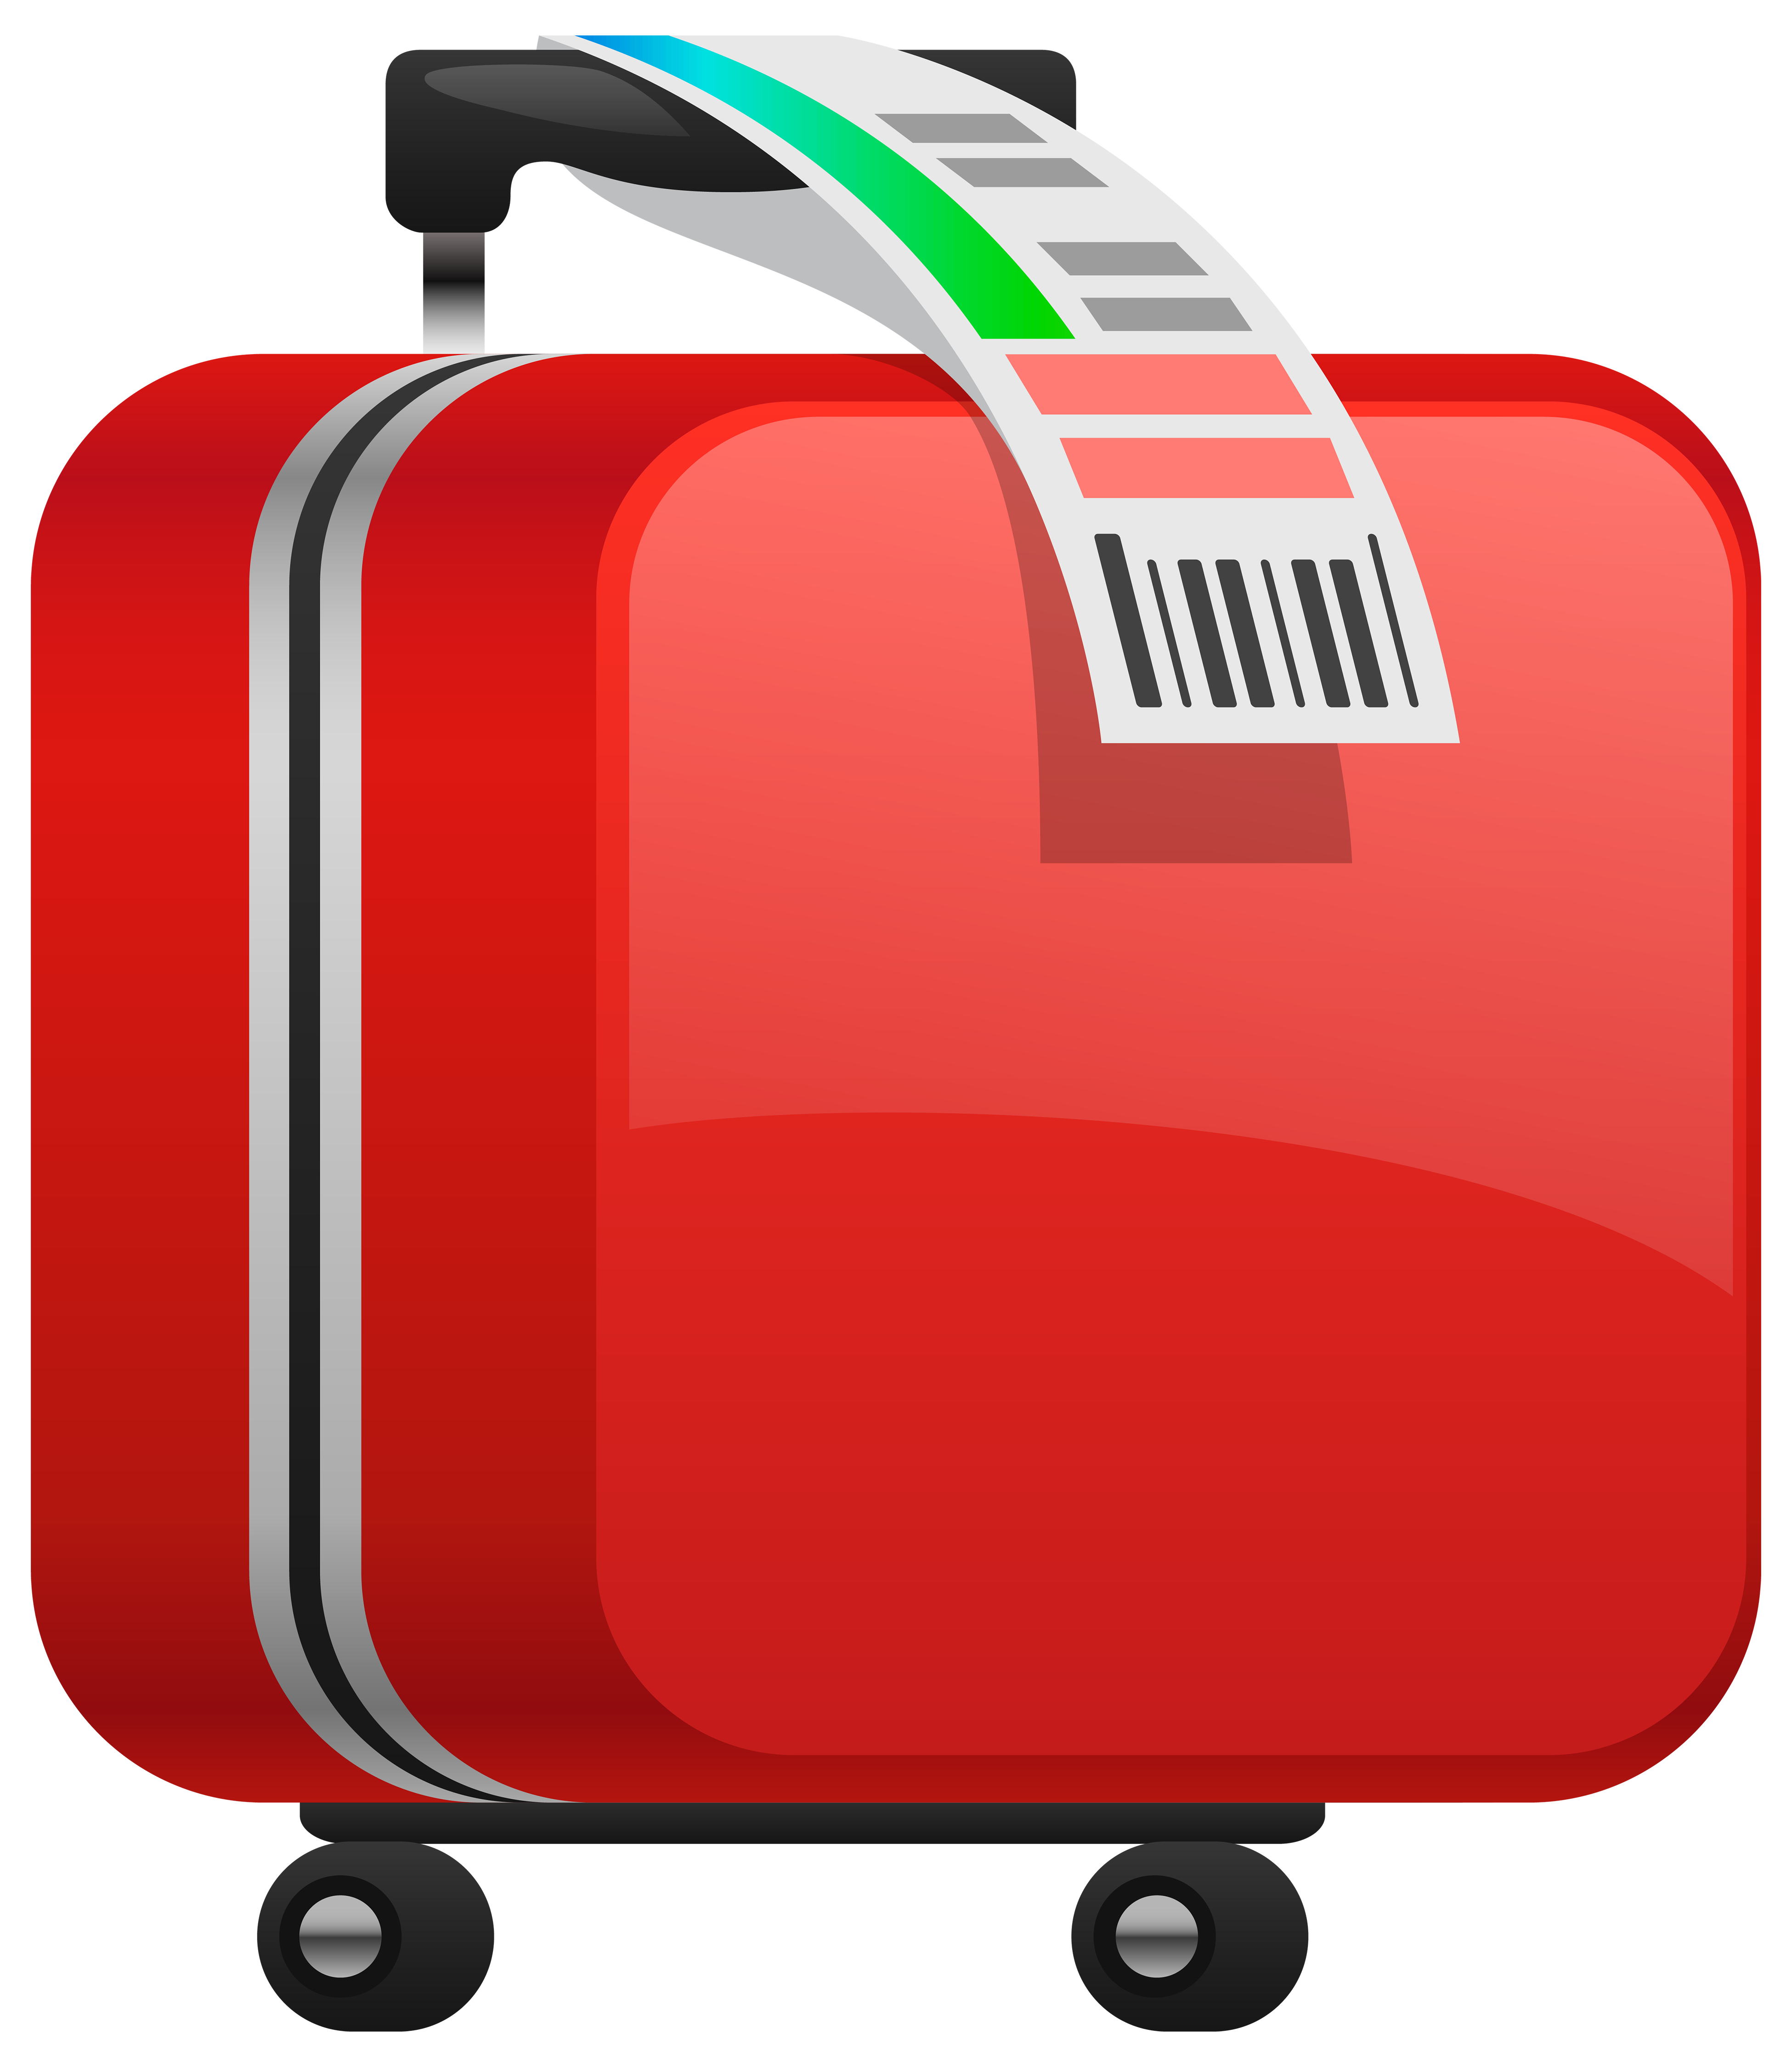 Download Free Suitcase Png Image ICON favicon.